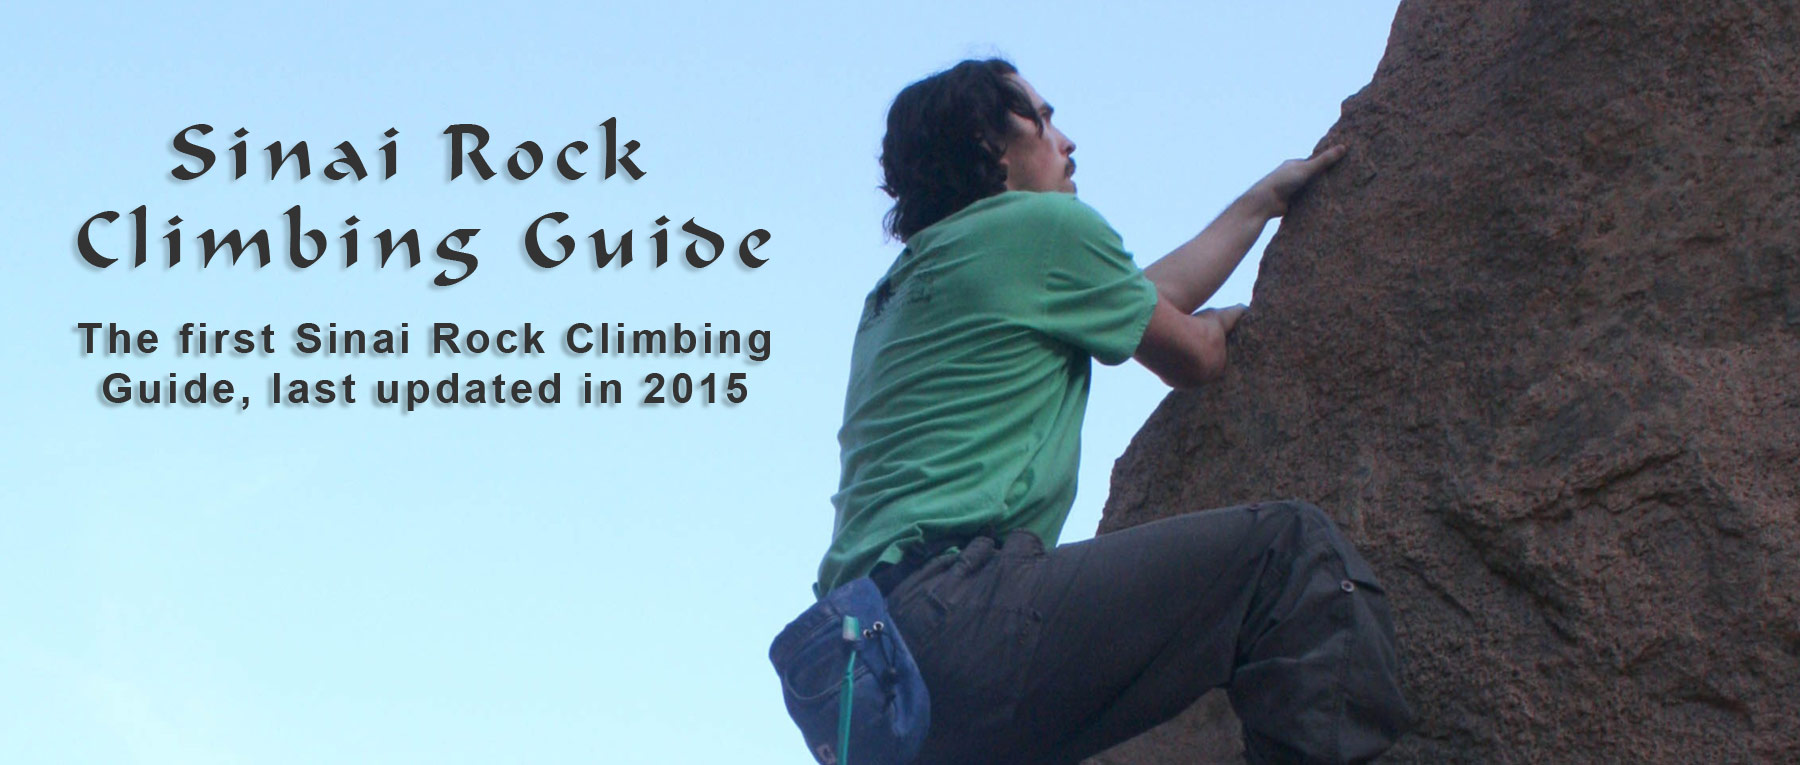 sinai-rock-climbing-guide